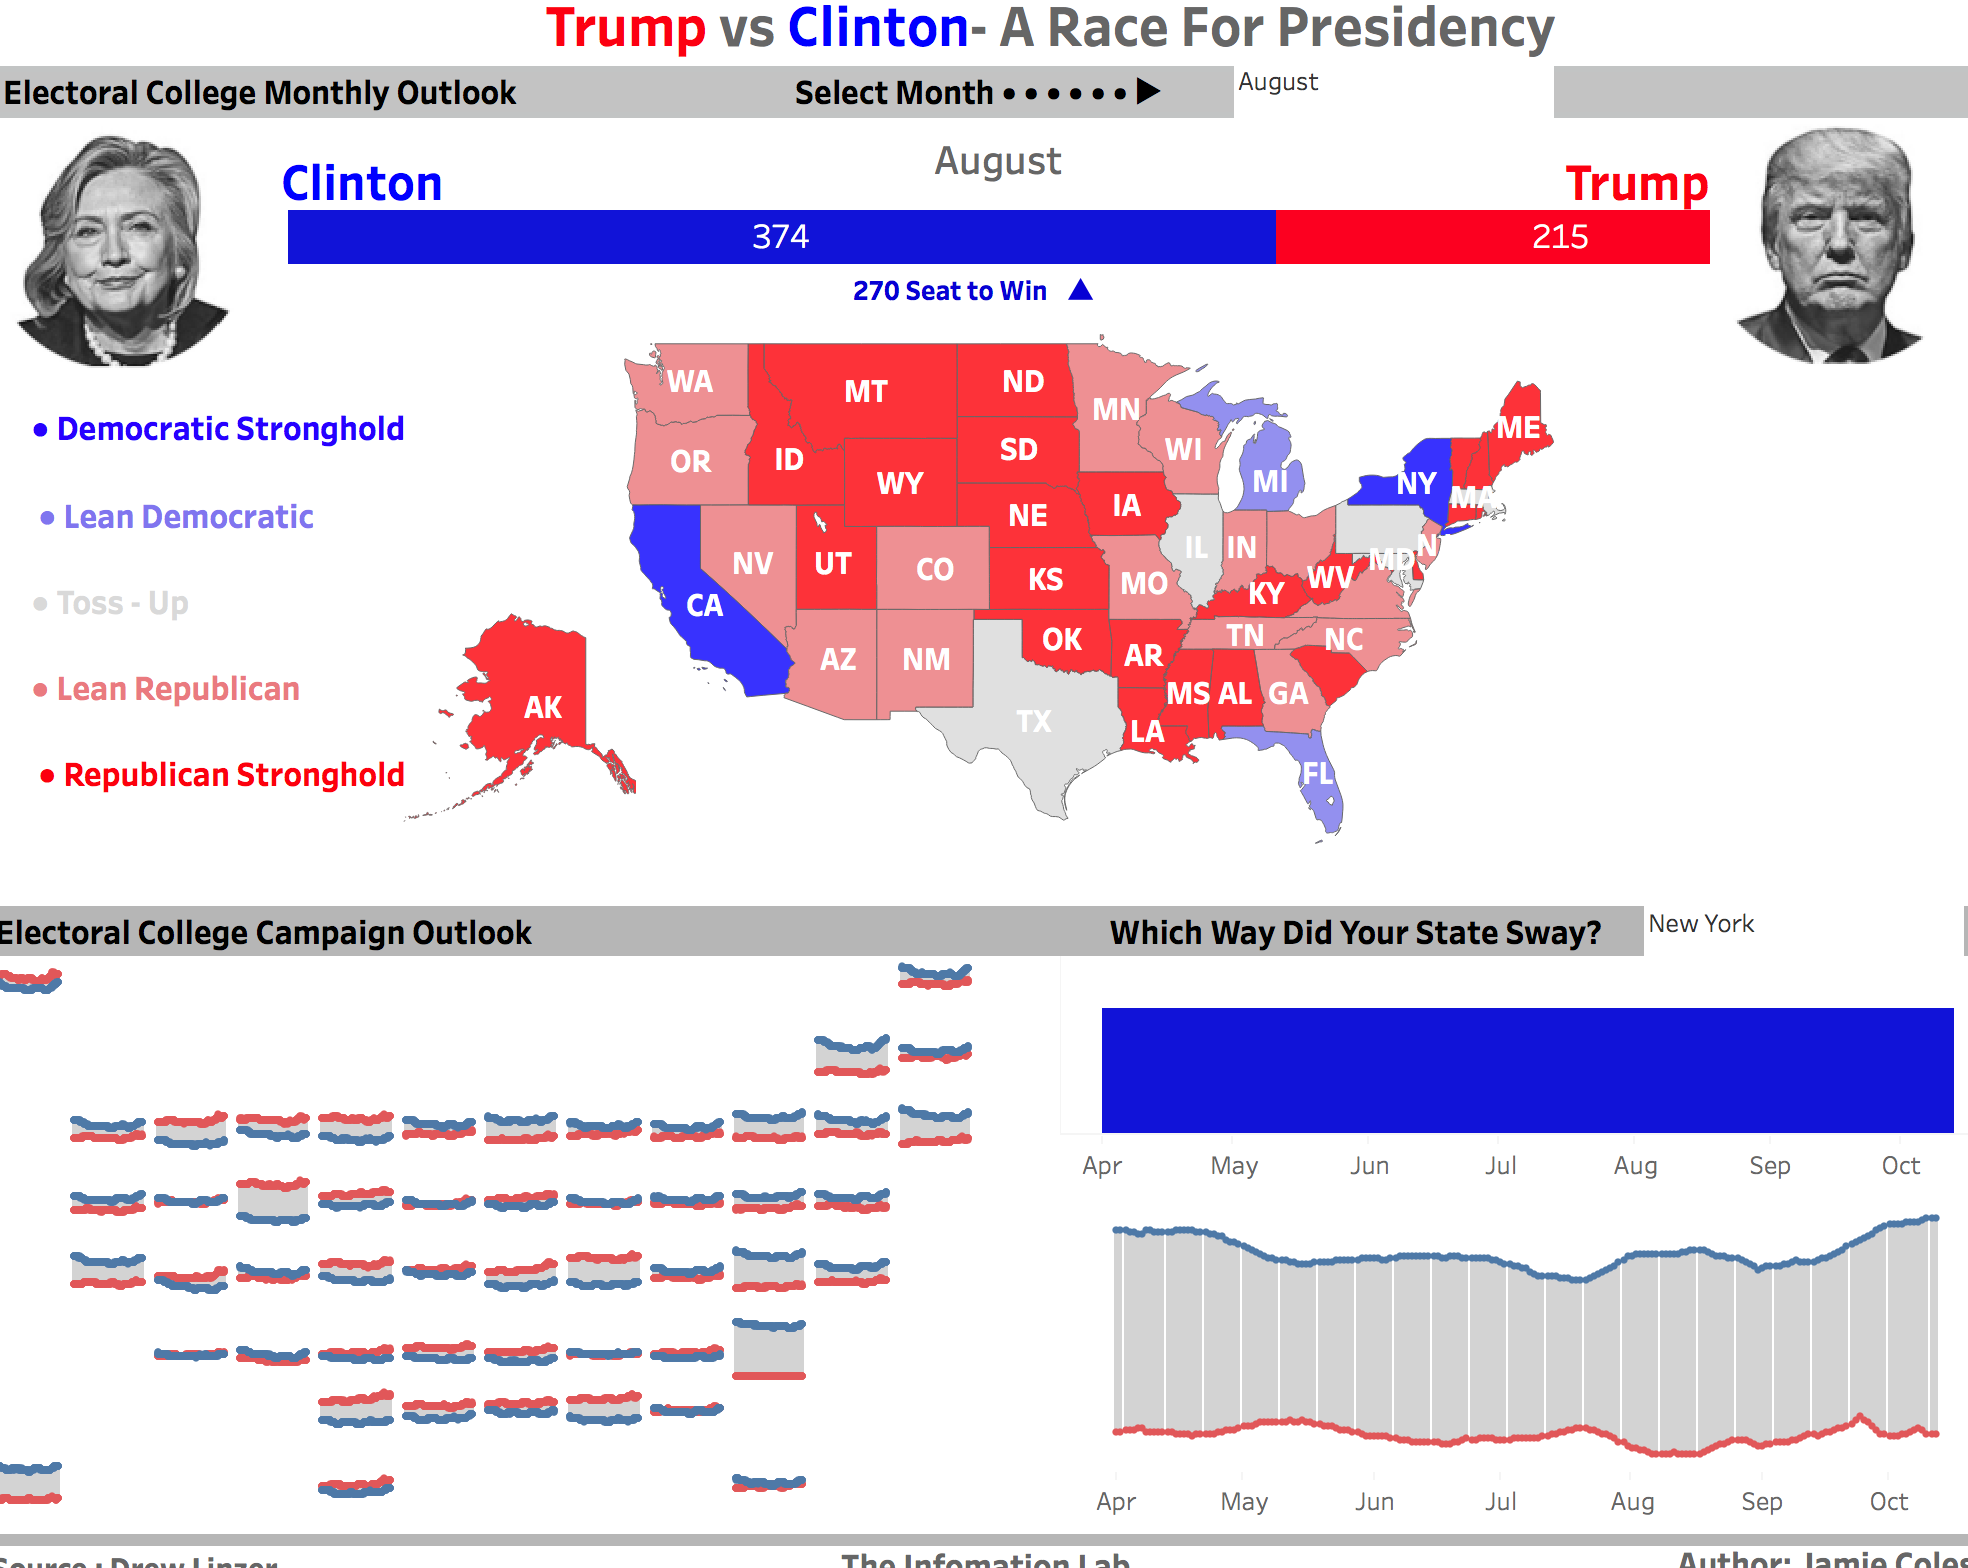 Jamie Coles, a frequent Makeover Monday participant, created this striking viz of the US election